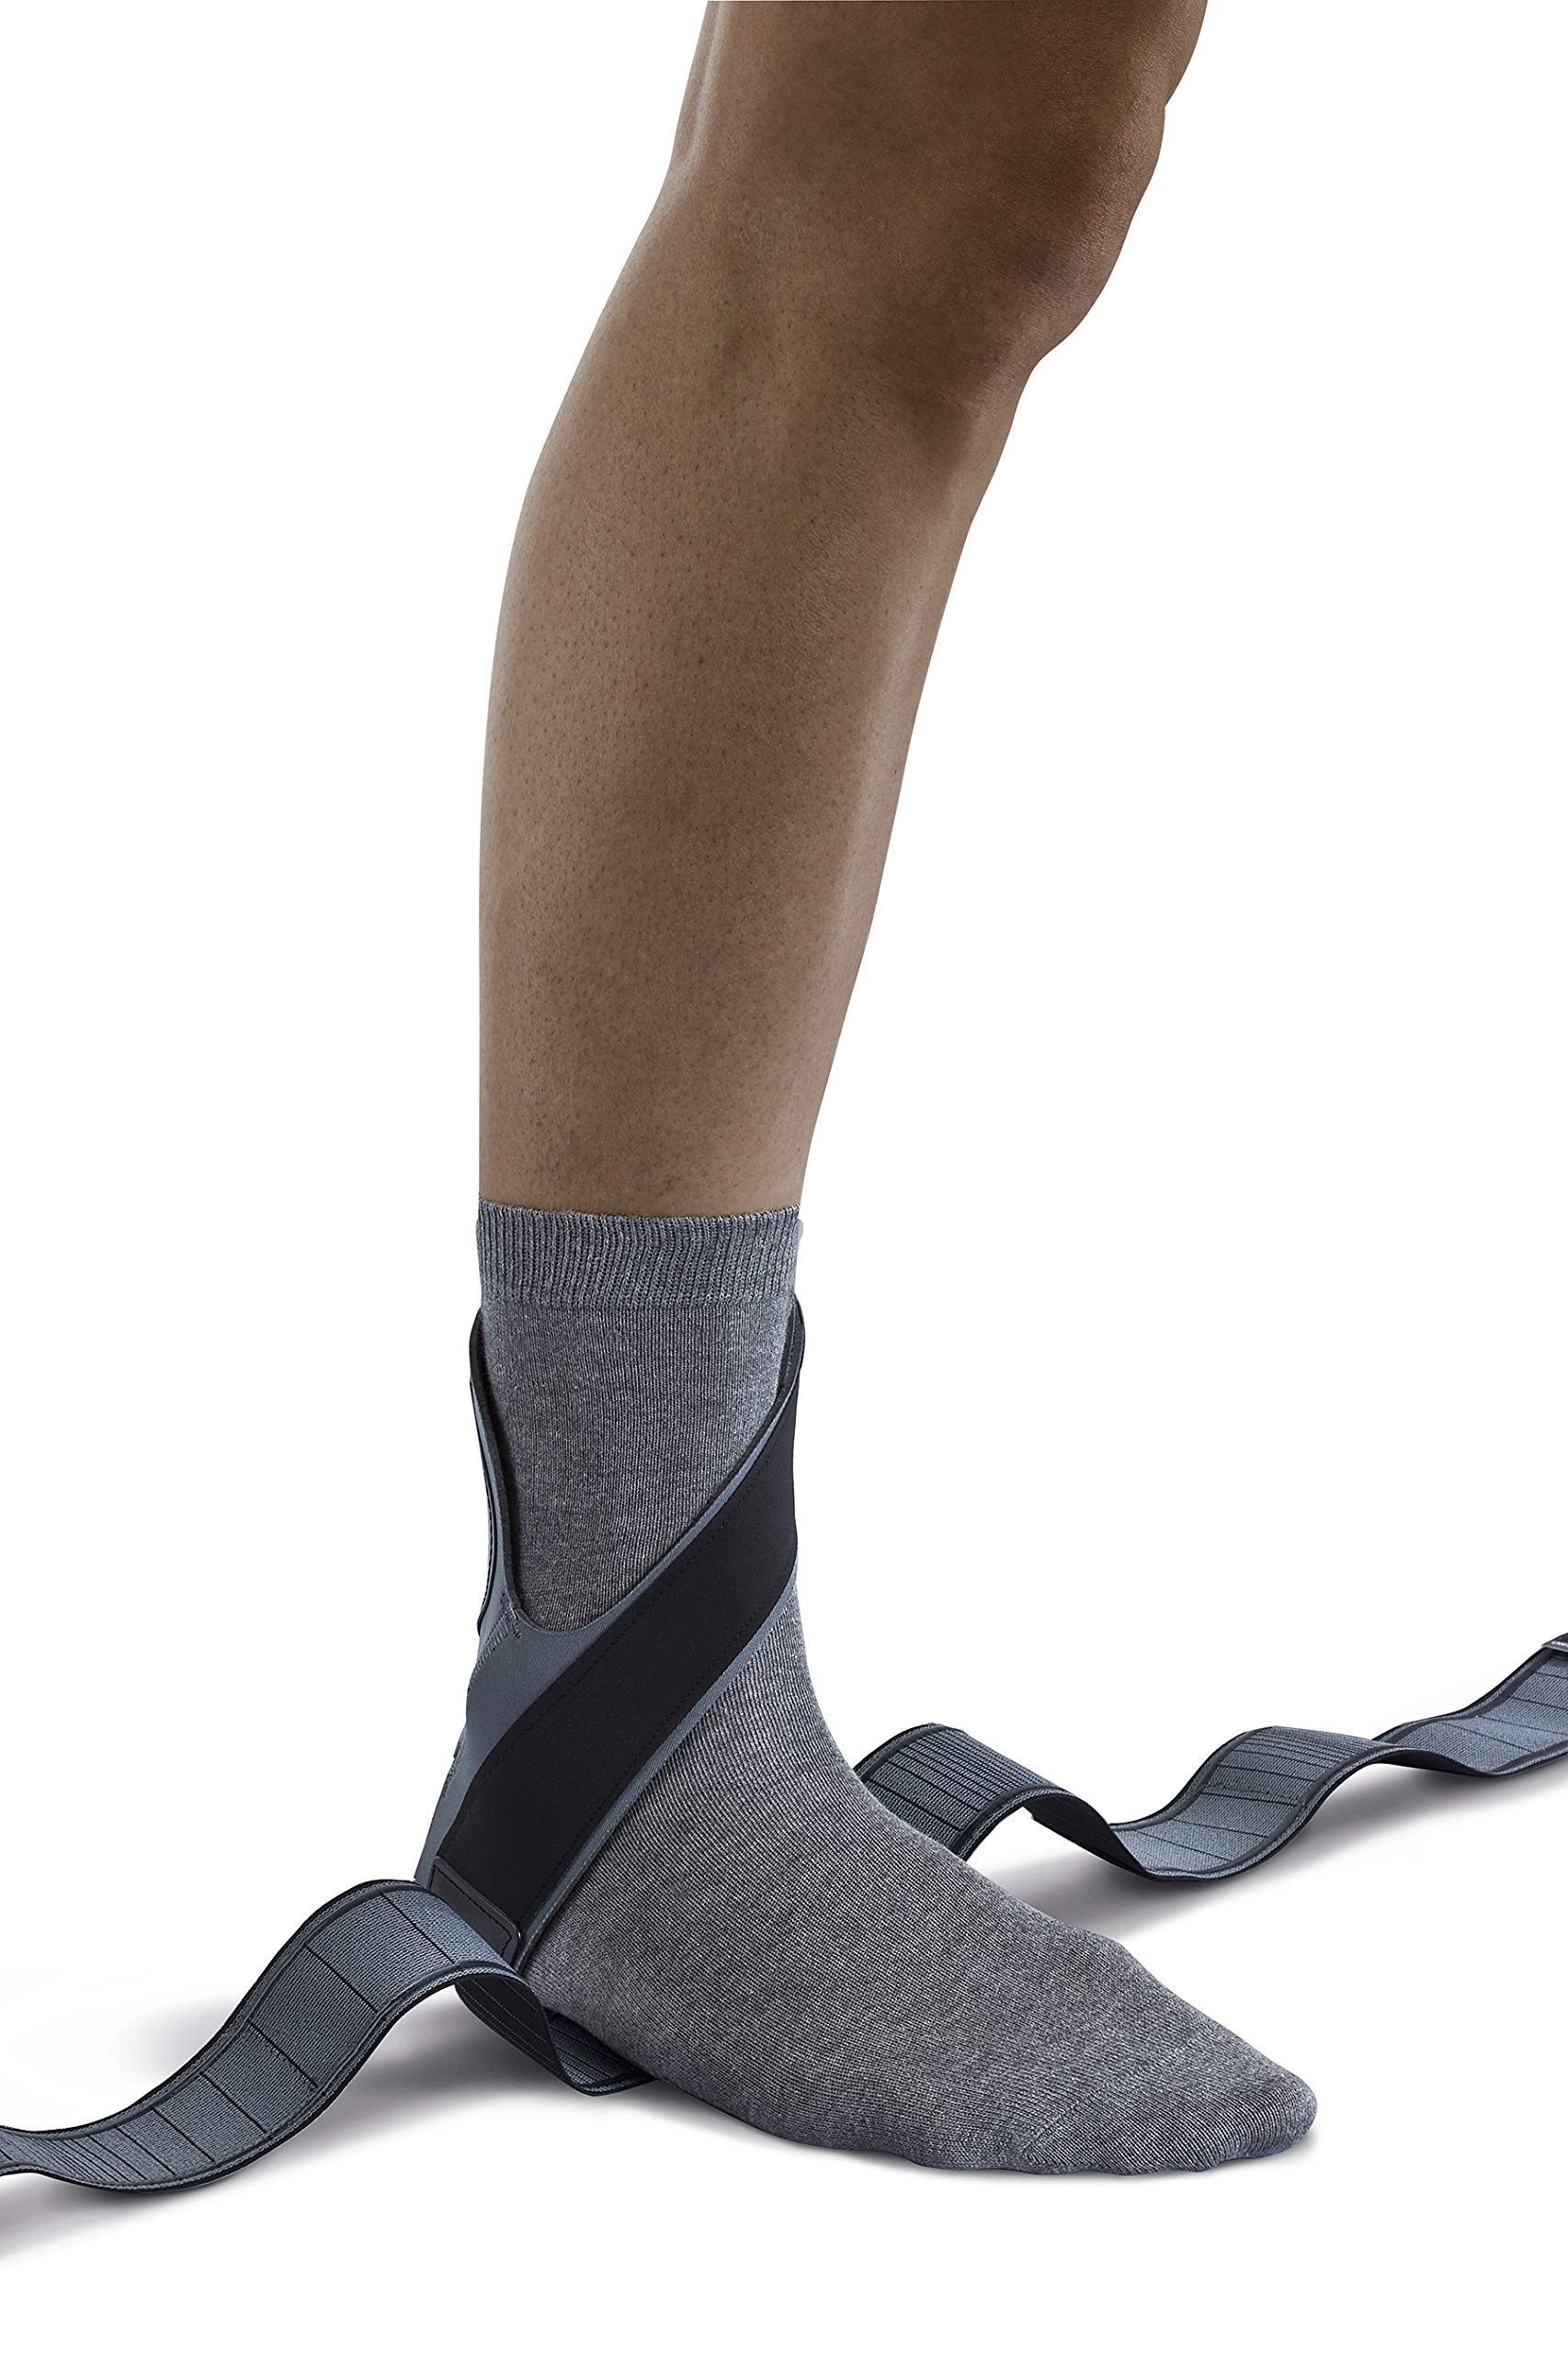 Push Ortho Ankle Brace Aequi – Low Profile Substitute for a Walking Boot (Left Size 3) by Push Braces (Image #3)